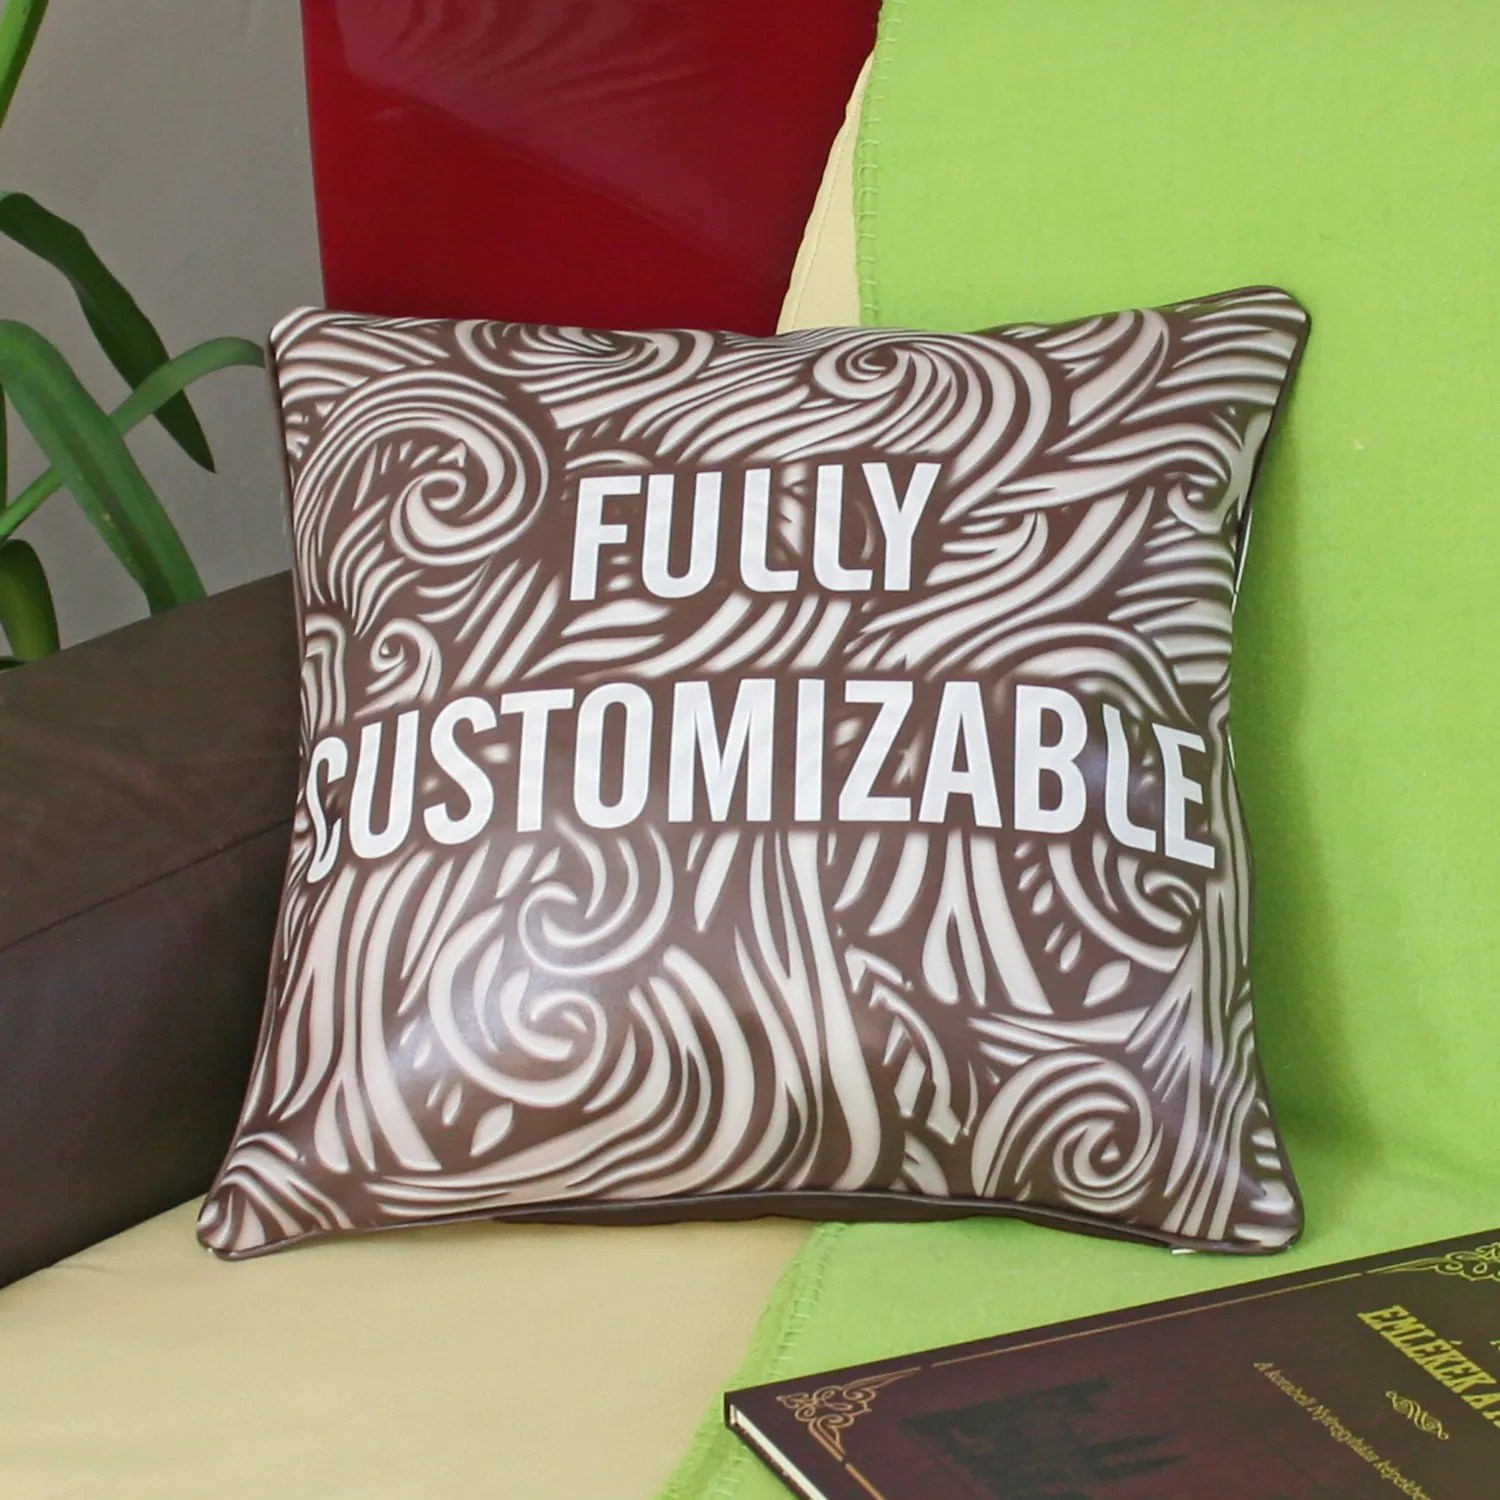 Faux leather CUSTOM PILLOW personalized pillow cover decorative throw pillow wedding gift